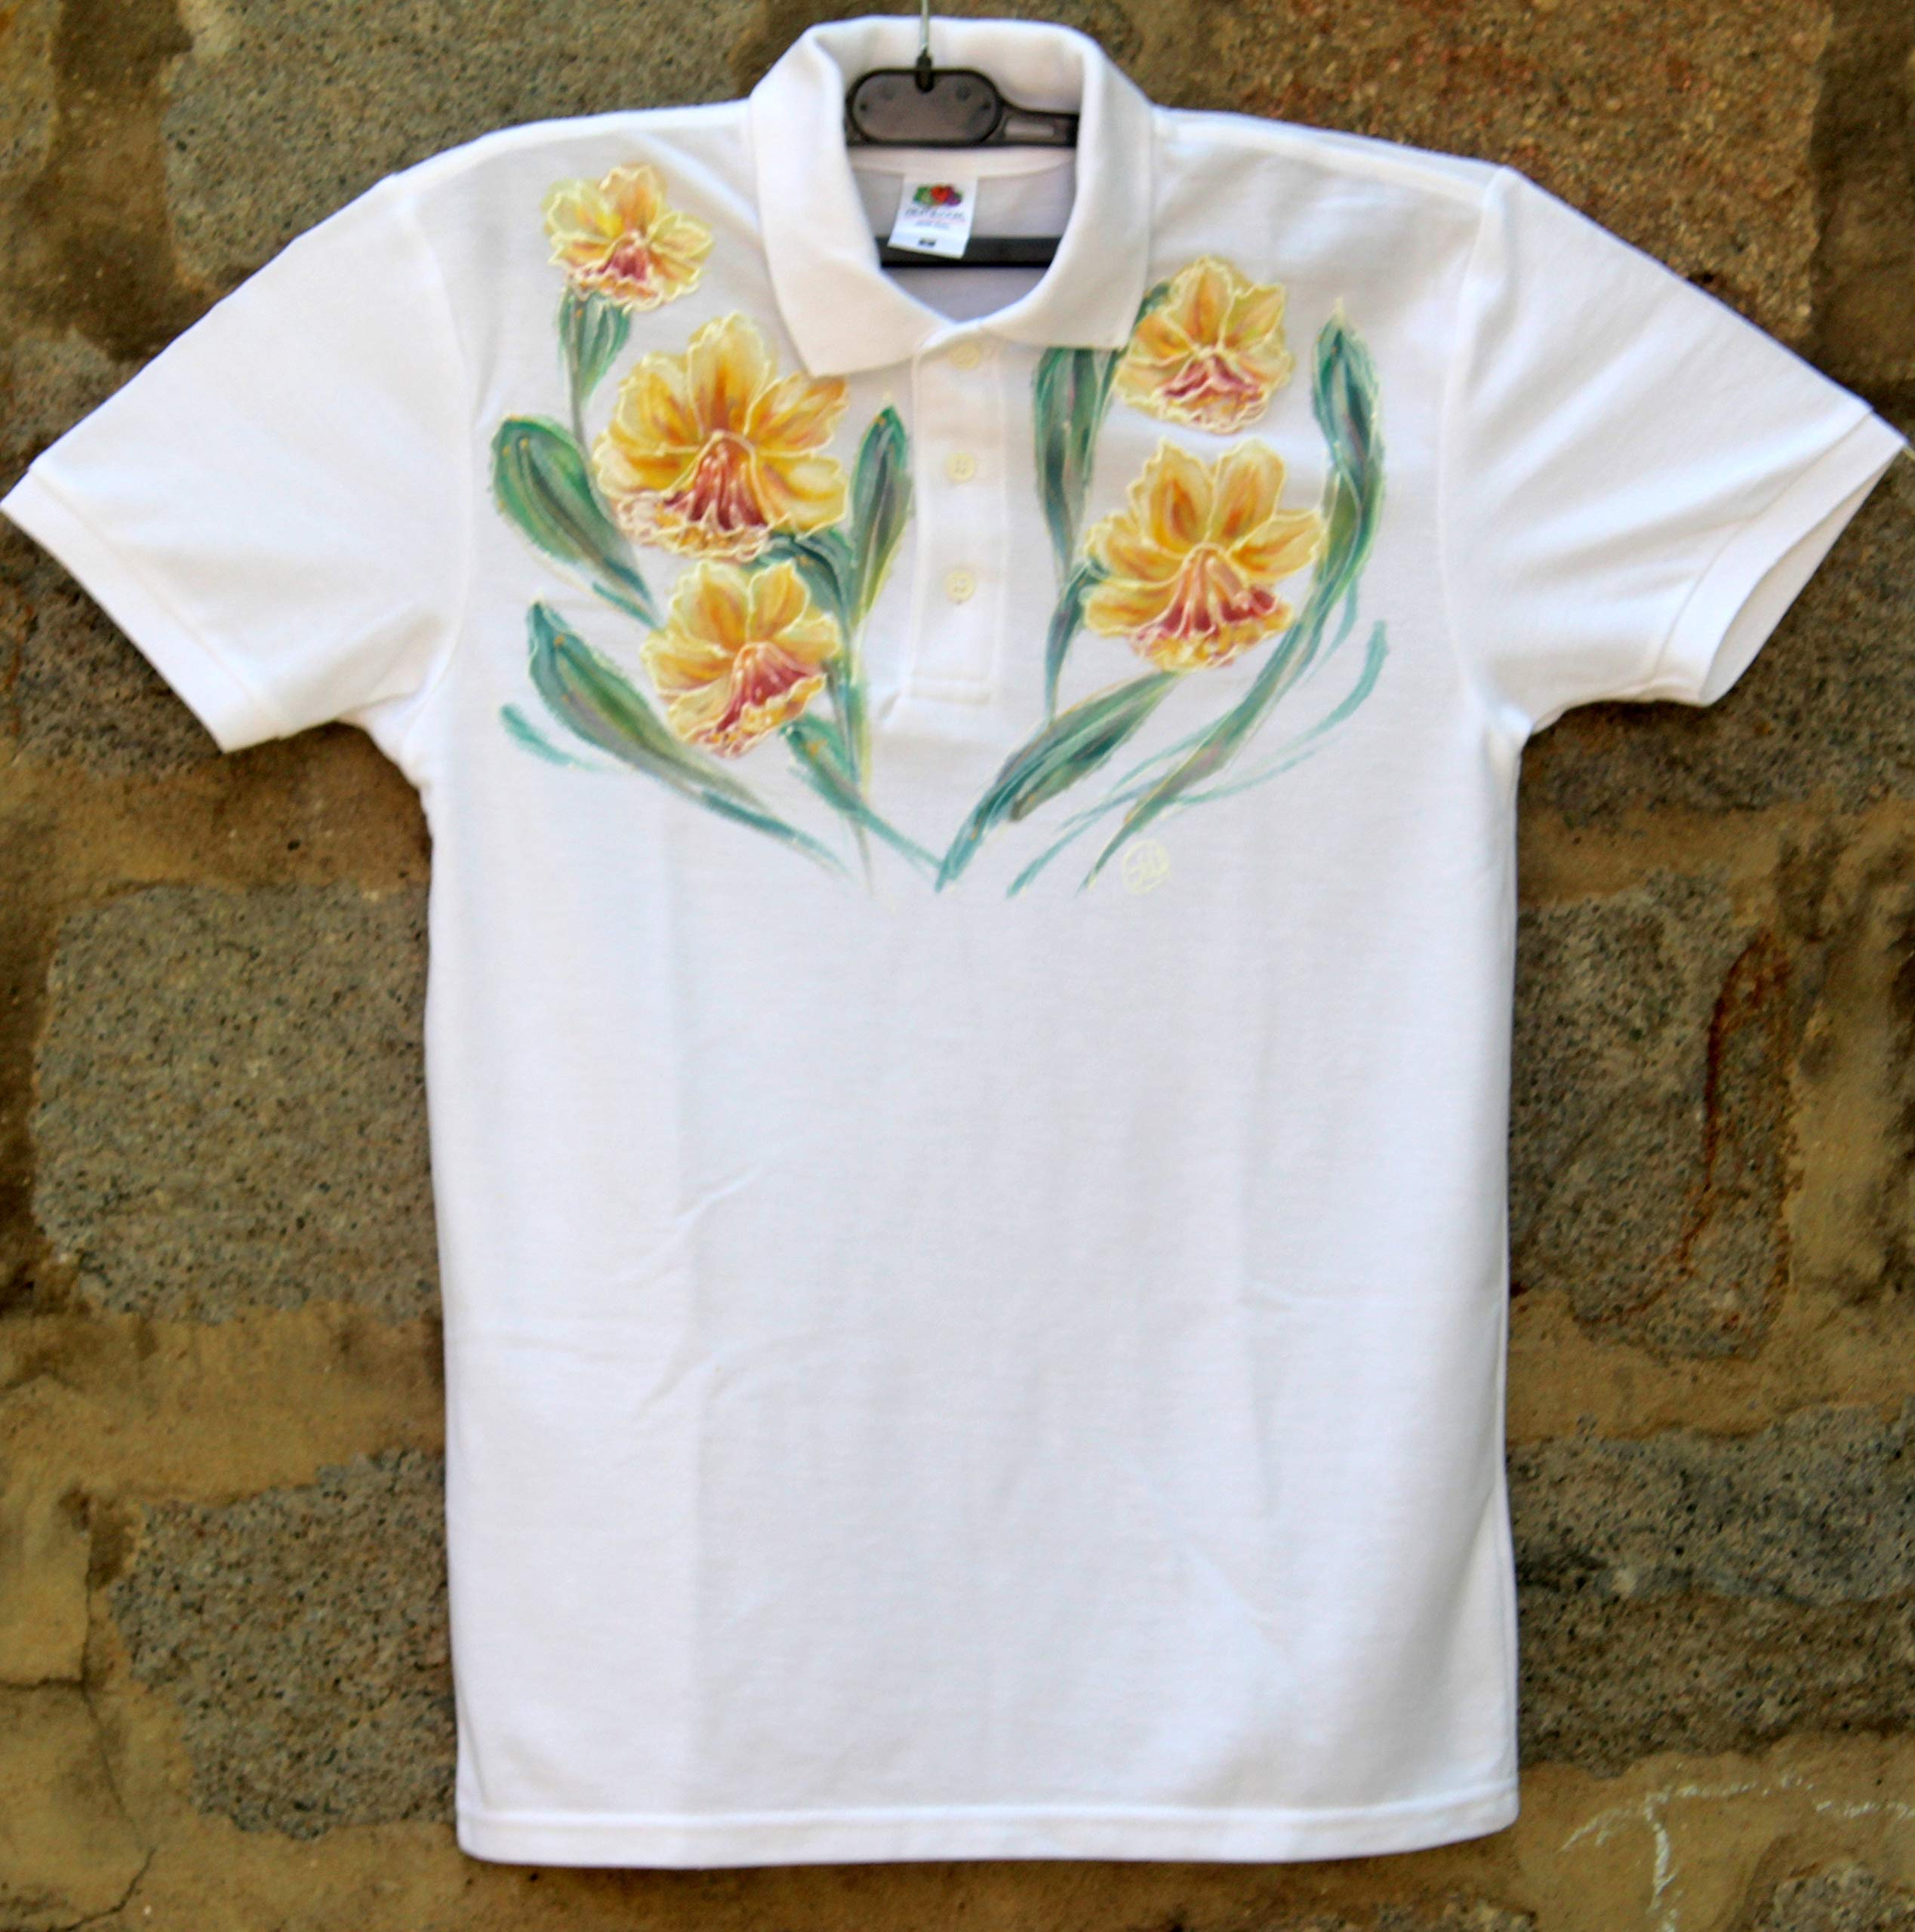 HOT SALE/White Polo T-shirt with Yellow Daffodils/Hand Painted Polo T-shirt/Painted Women's Polo/Daffodils Flower Polo T-shirt/Beach Shirt/Gift Idea/Shirt ''Fruit of the Loom''/size S 65/35.